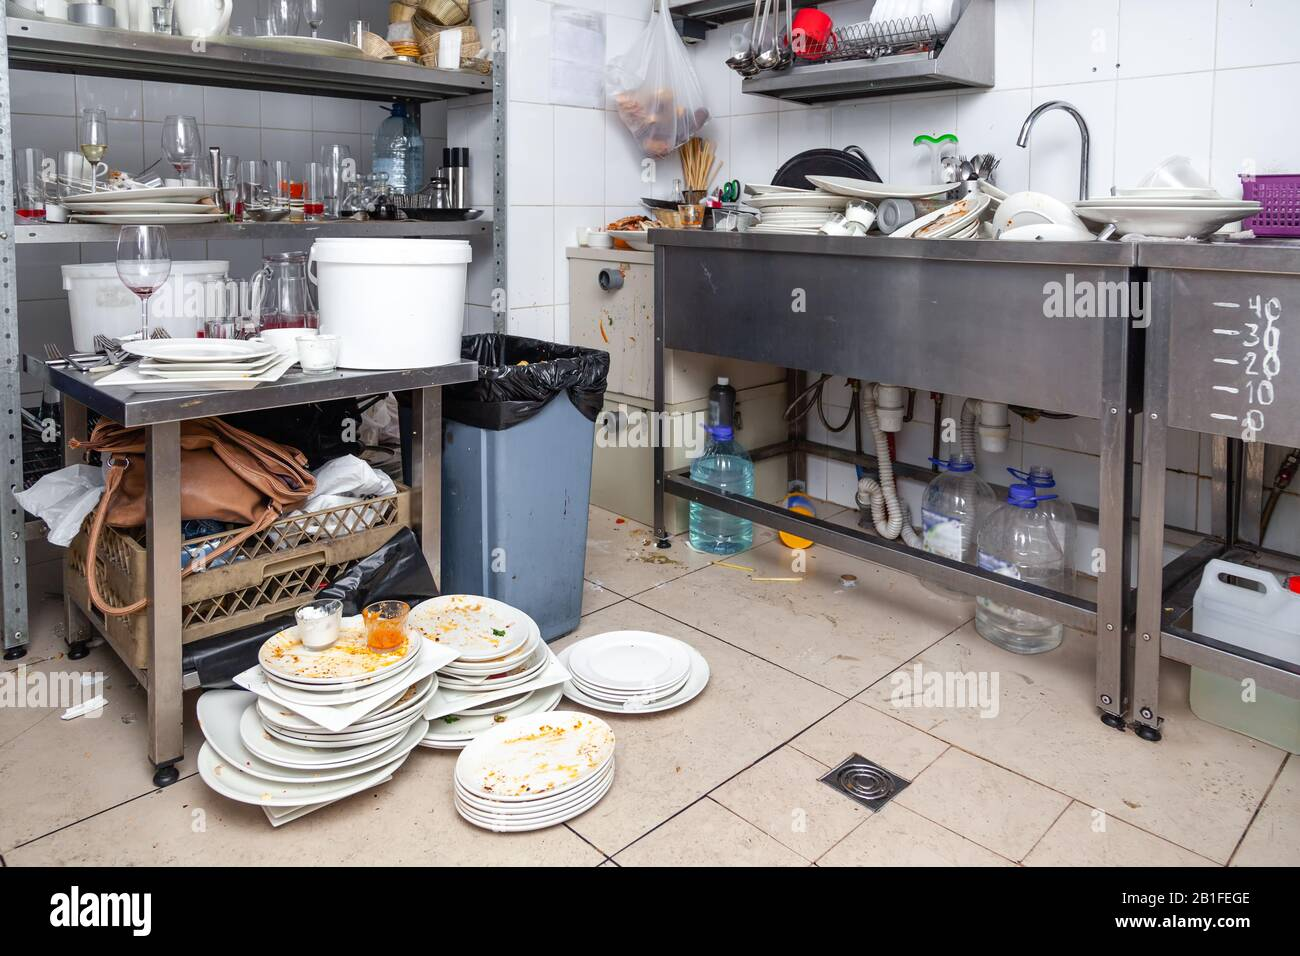 Stacks Of Dirty Dishes Crockery Many Glasses Appliances With Leftover Food On Professional Restaurant Kitchen In Metal Sink Shelves Garbage On Fl Stock Photo Alamy